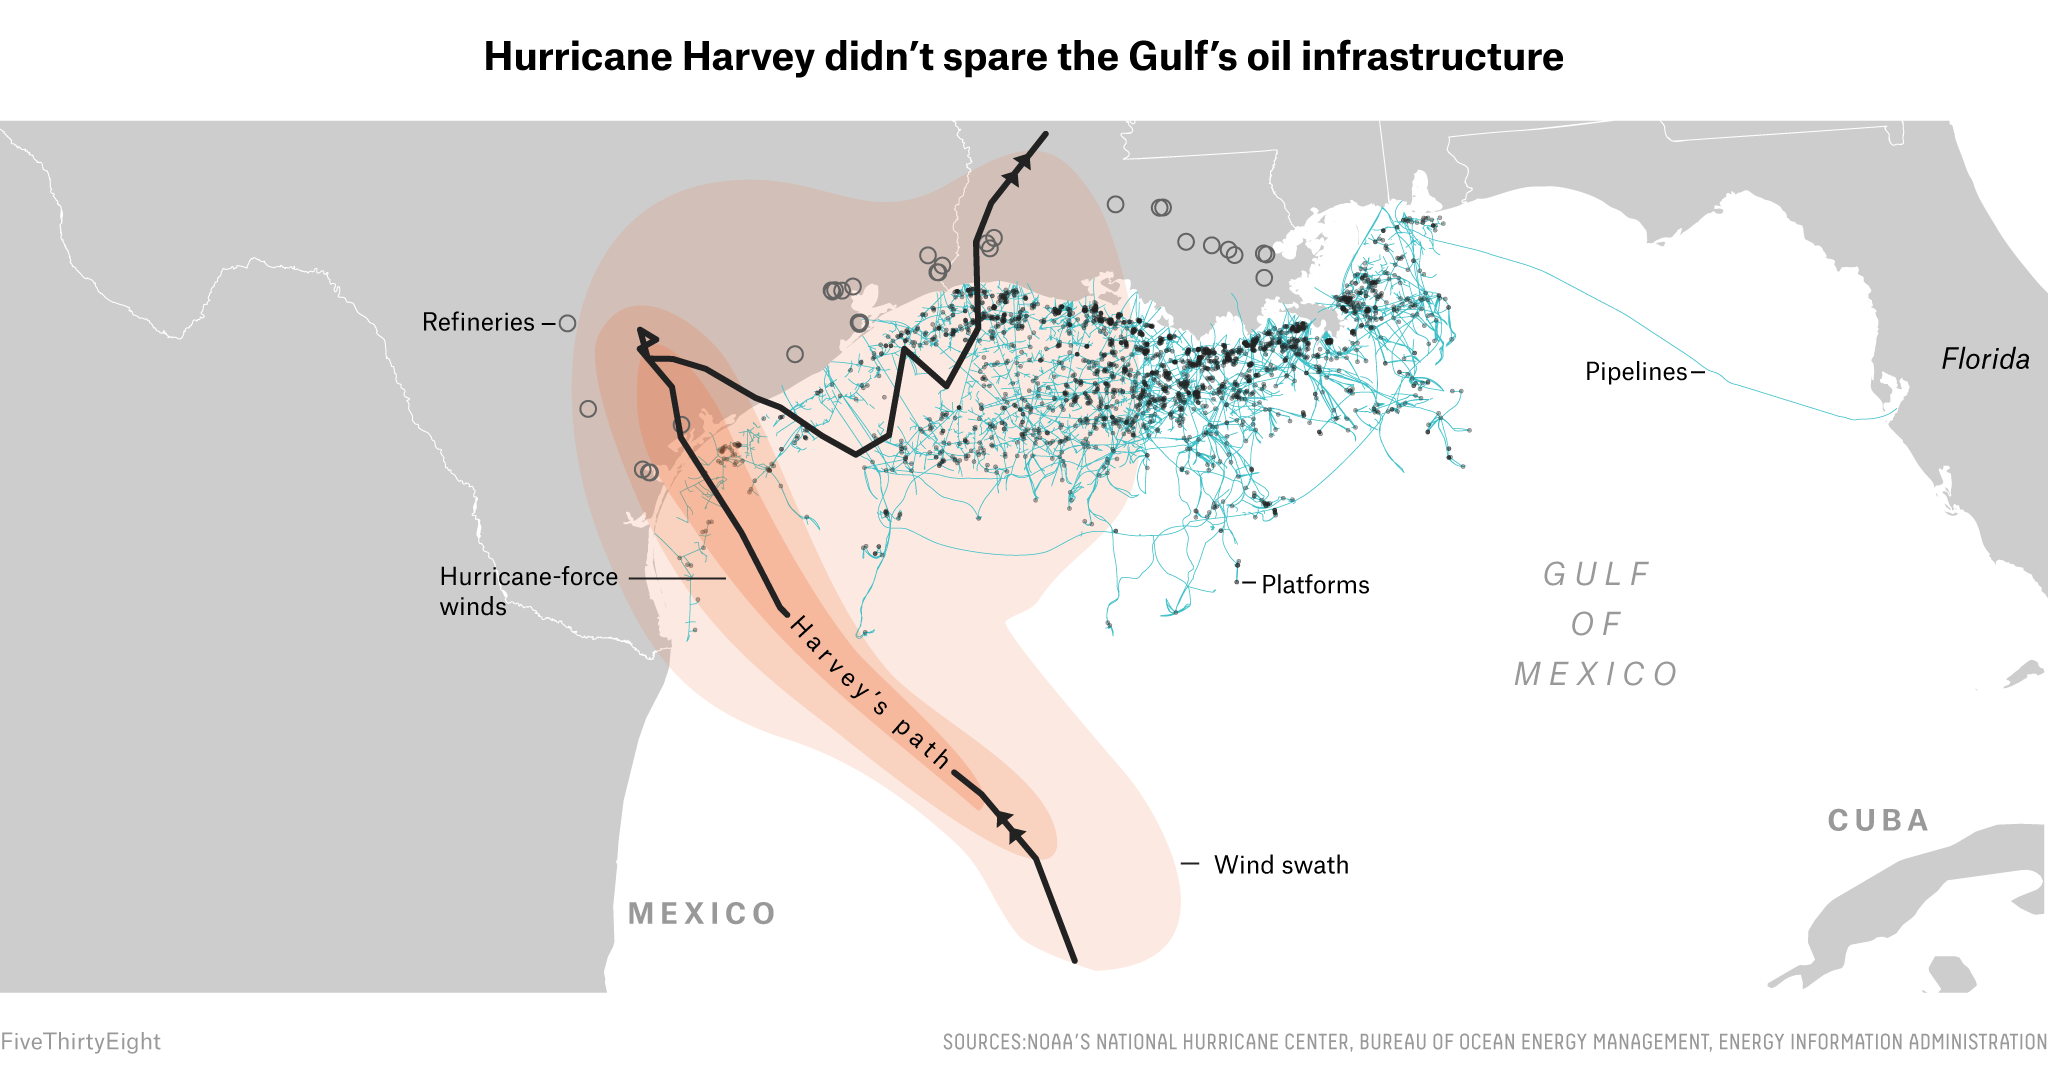 Hurricane Harvey S Impact And How It Compares To Other Storms With Images National Hurricane Center Harvey Hurricane